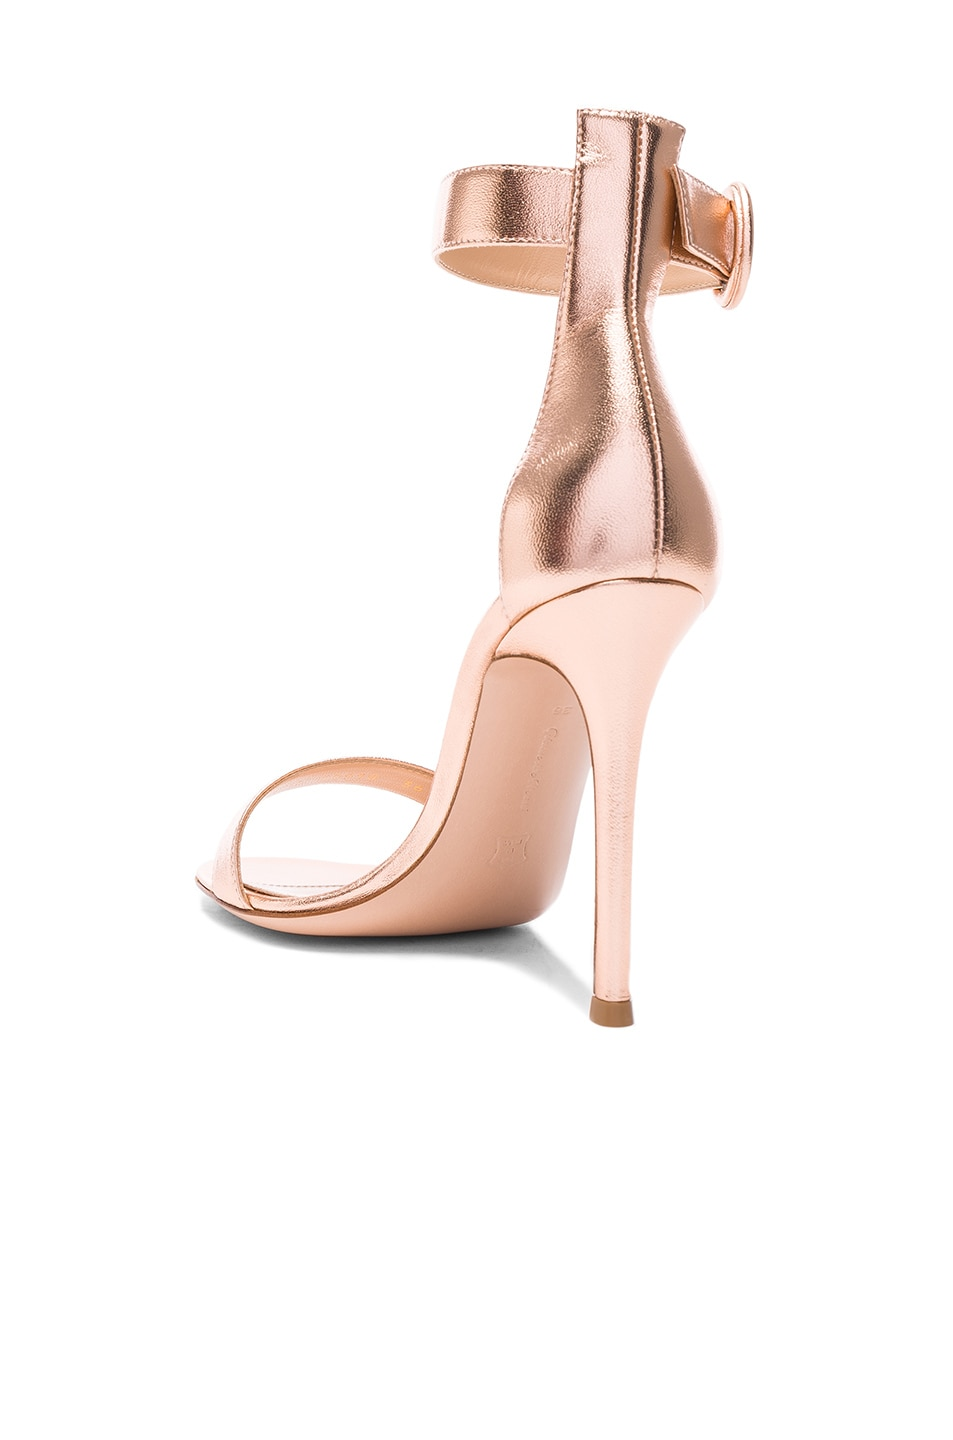 Image 3 of Gianvito Rossi Metallic Leather Ankle Strap Heels in Praline